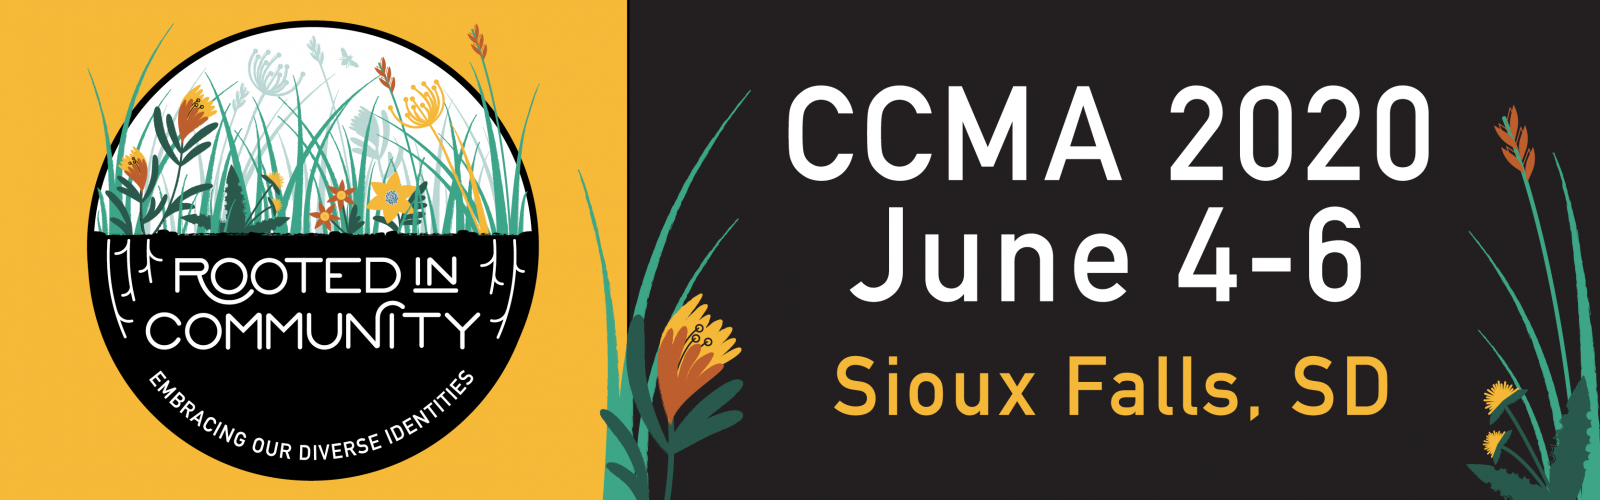 CCMA 2020, June 4-6, Sioux Falls, SD